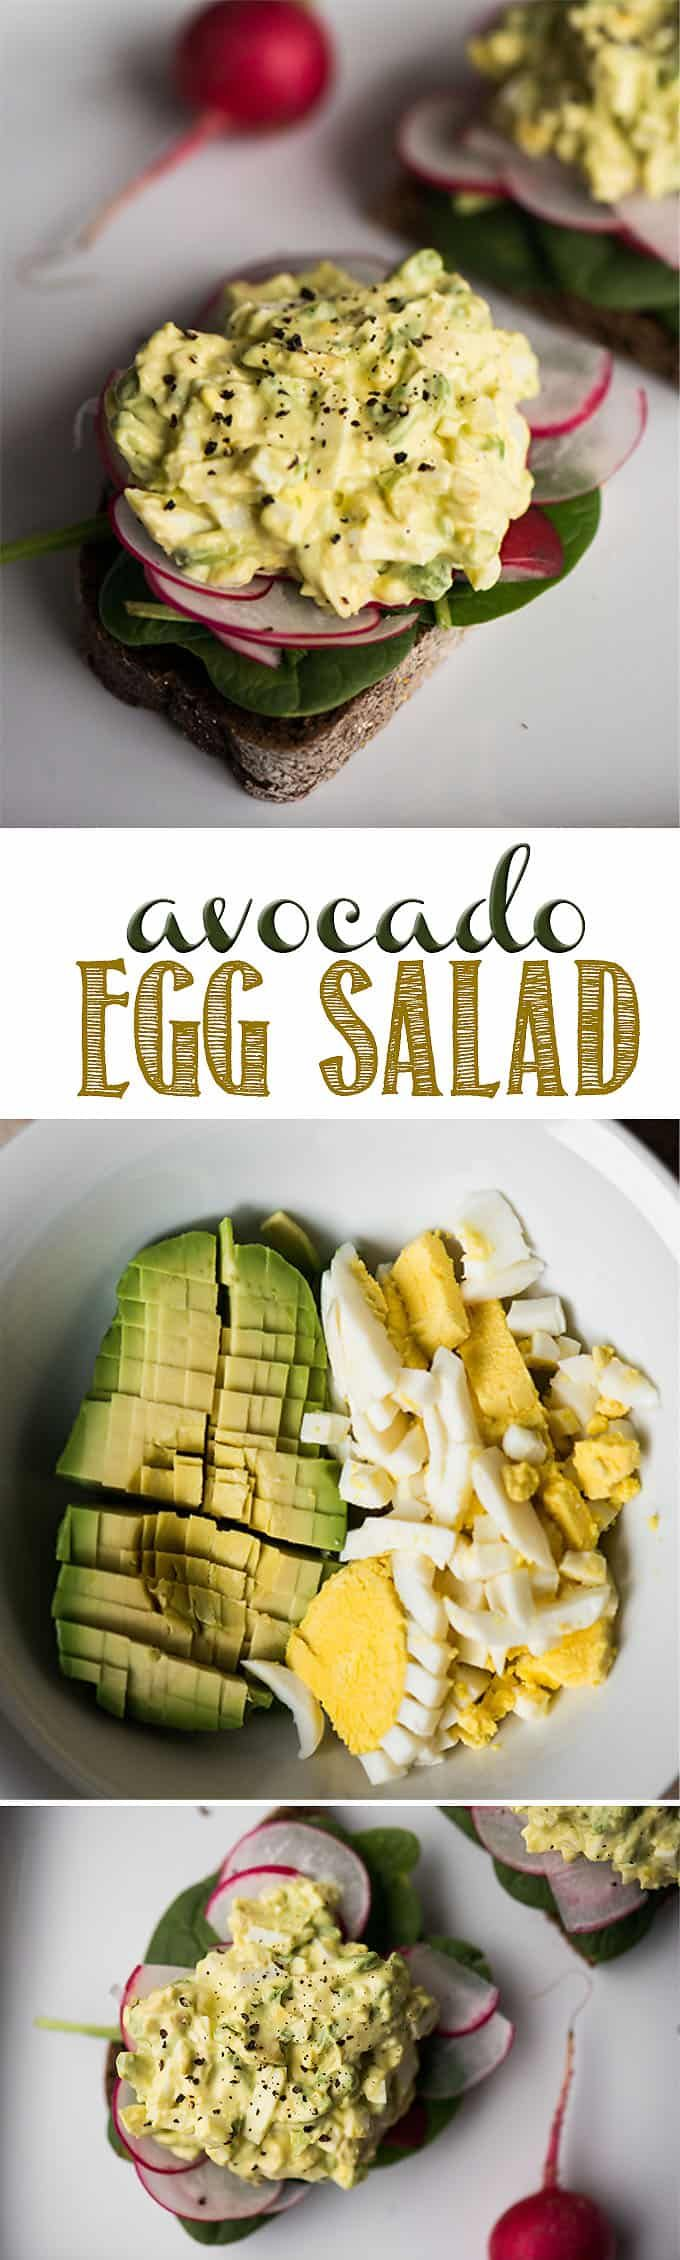 Avocado Egg Salad combines creamy mashed avocado with traditional egg salad for a delicious quick and easy lunch. If you love avocado on toast, but also love the flavor of egg salad, then this recipe is for you. Make a big batch and have lunch ready to go for the whole week!